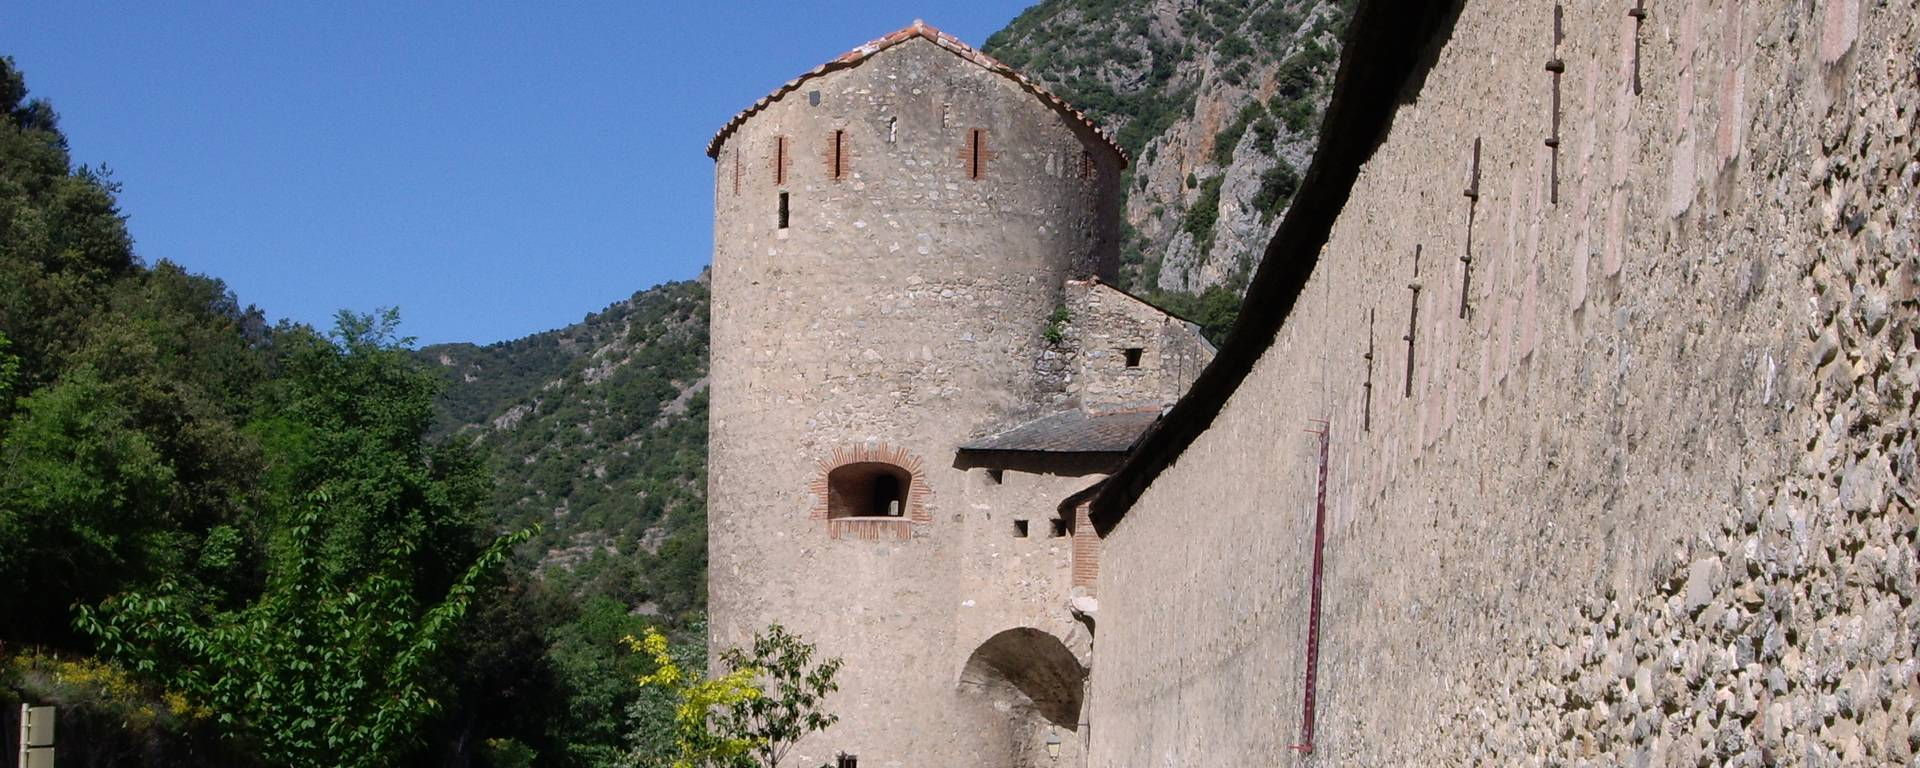 The ramparts of Villefranche de Conflent